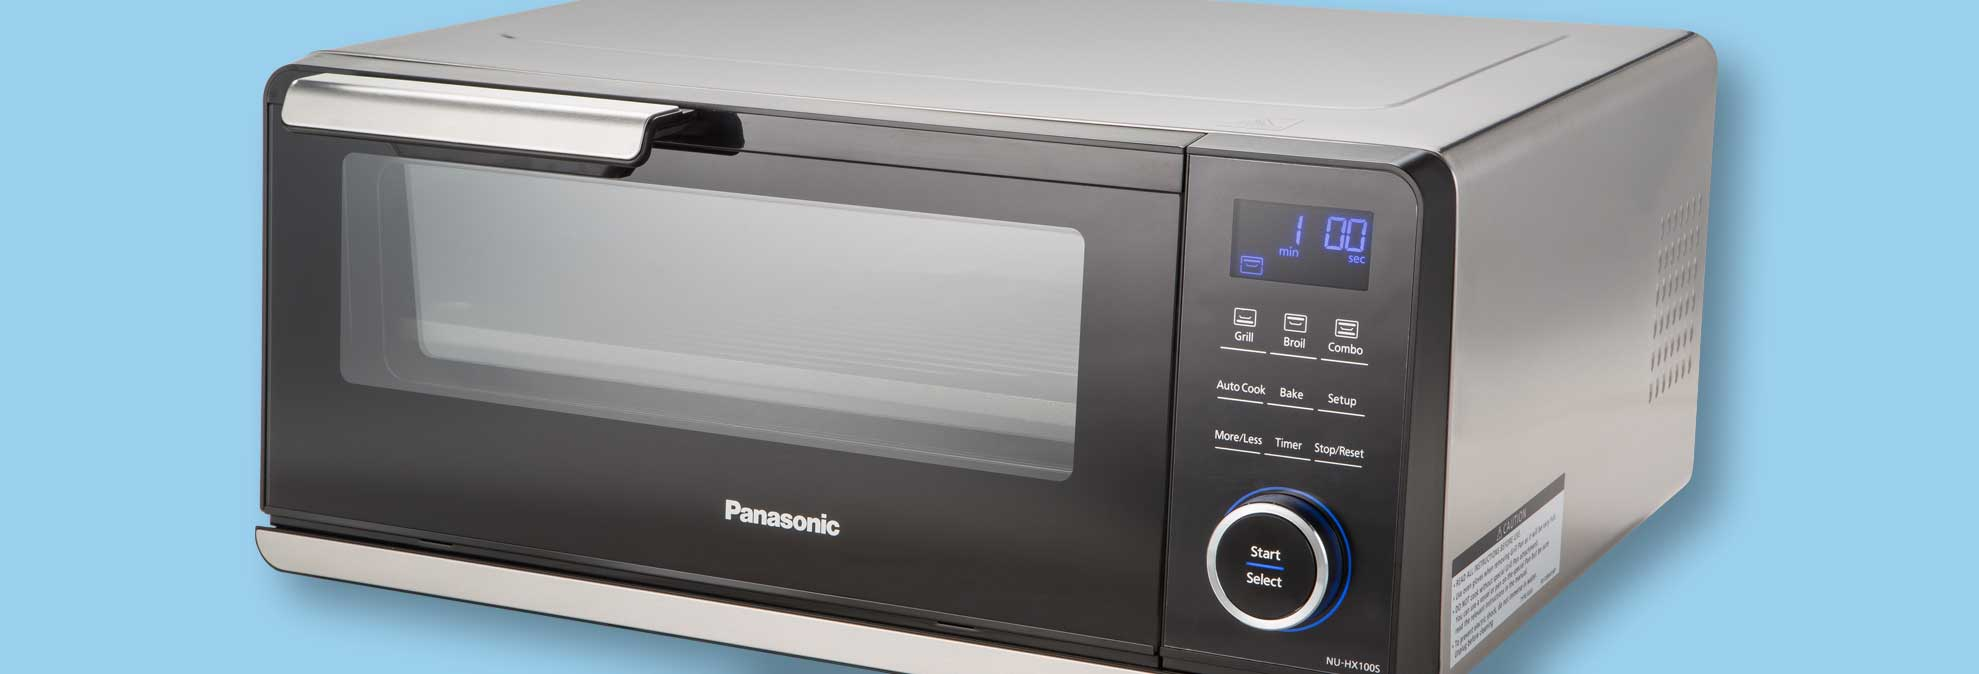 Panasonic Countertop Induction Oven Review - Consumer Reports